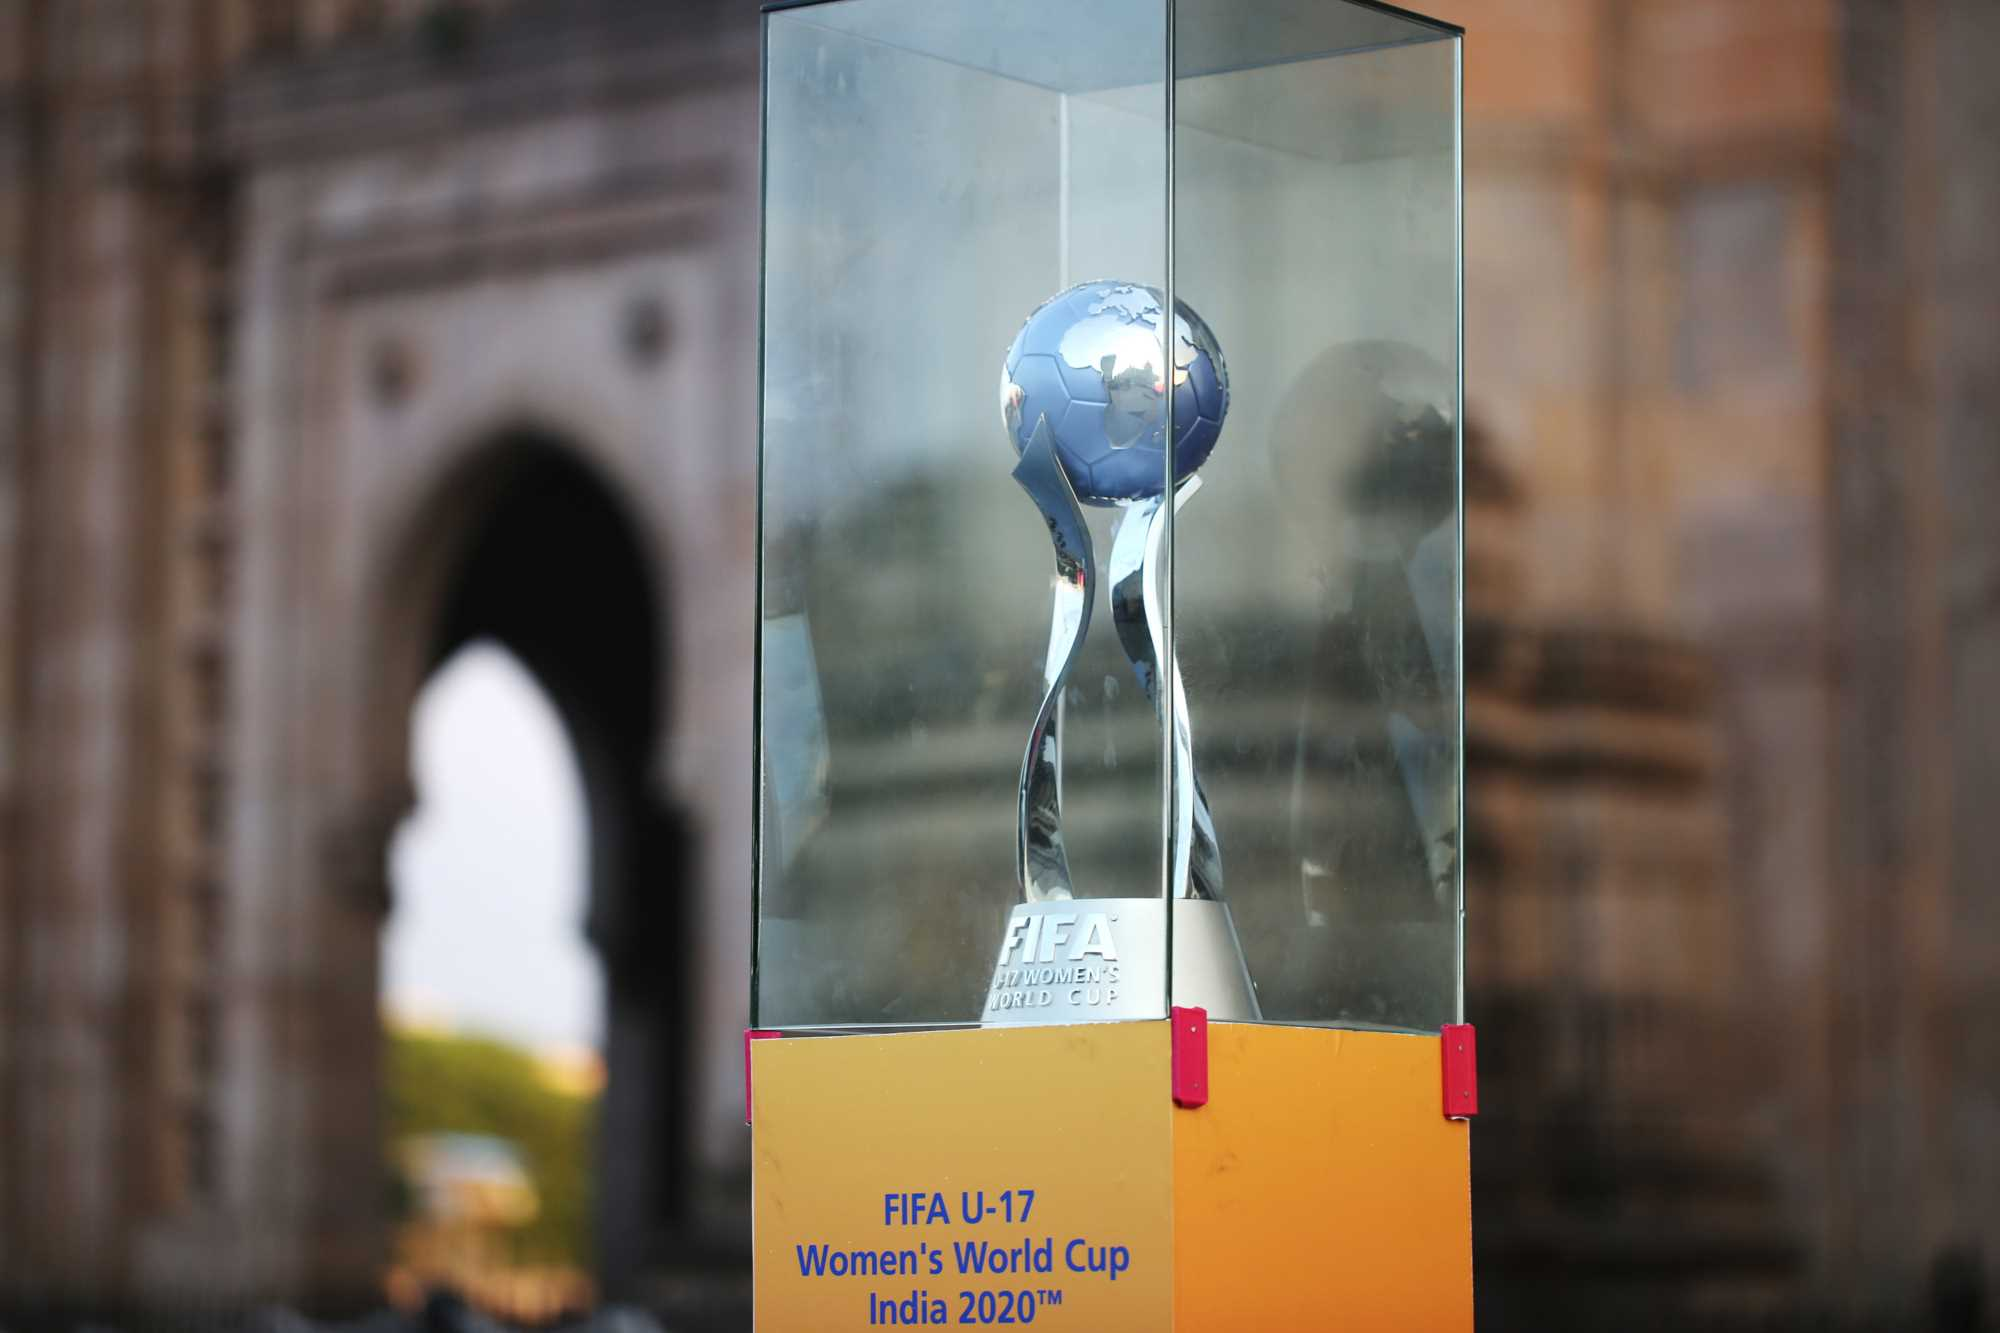 FIFA U-20 Ladies's World Cup 2020 and FIFA U-17 Ladies's World Cup 2020 cancelled